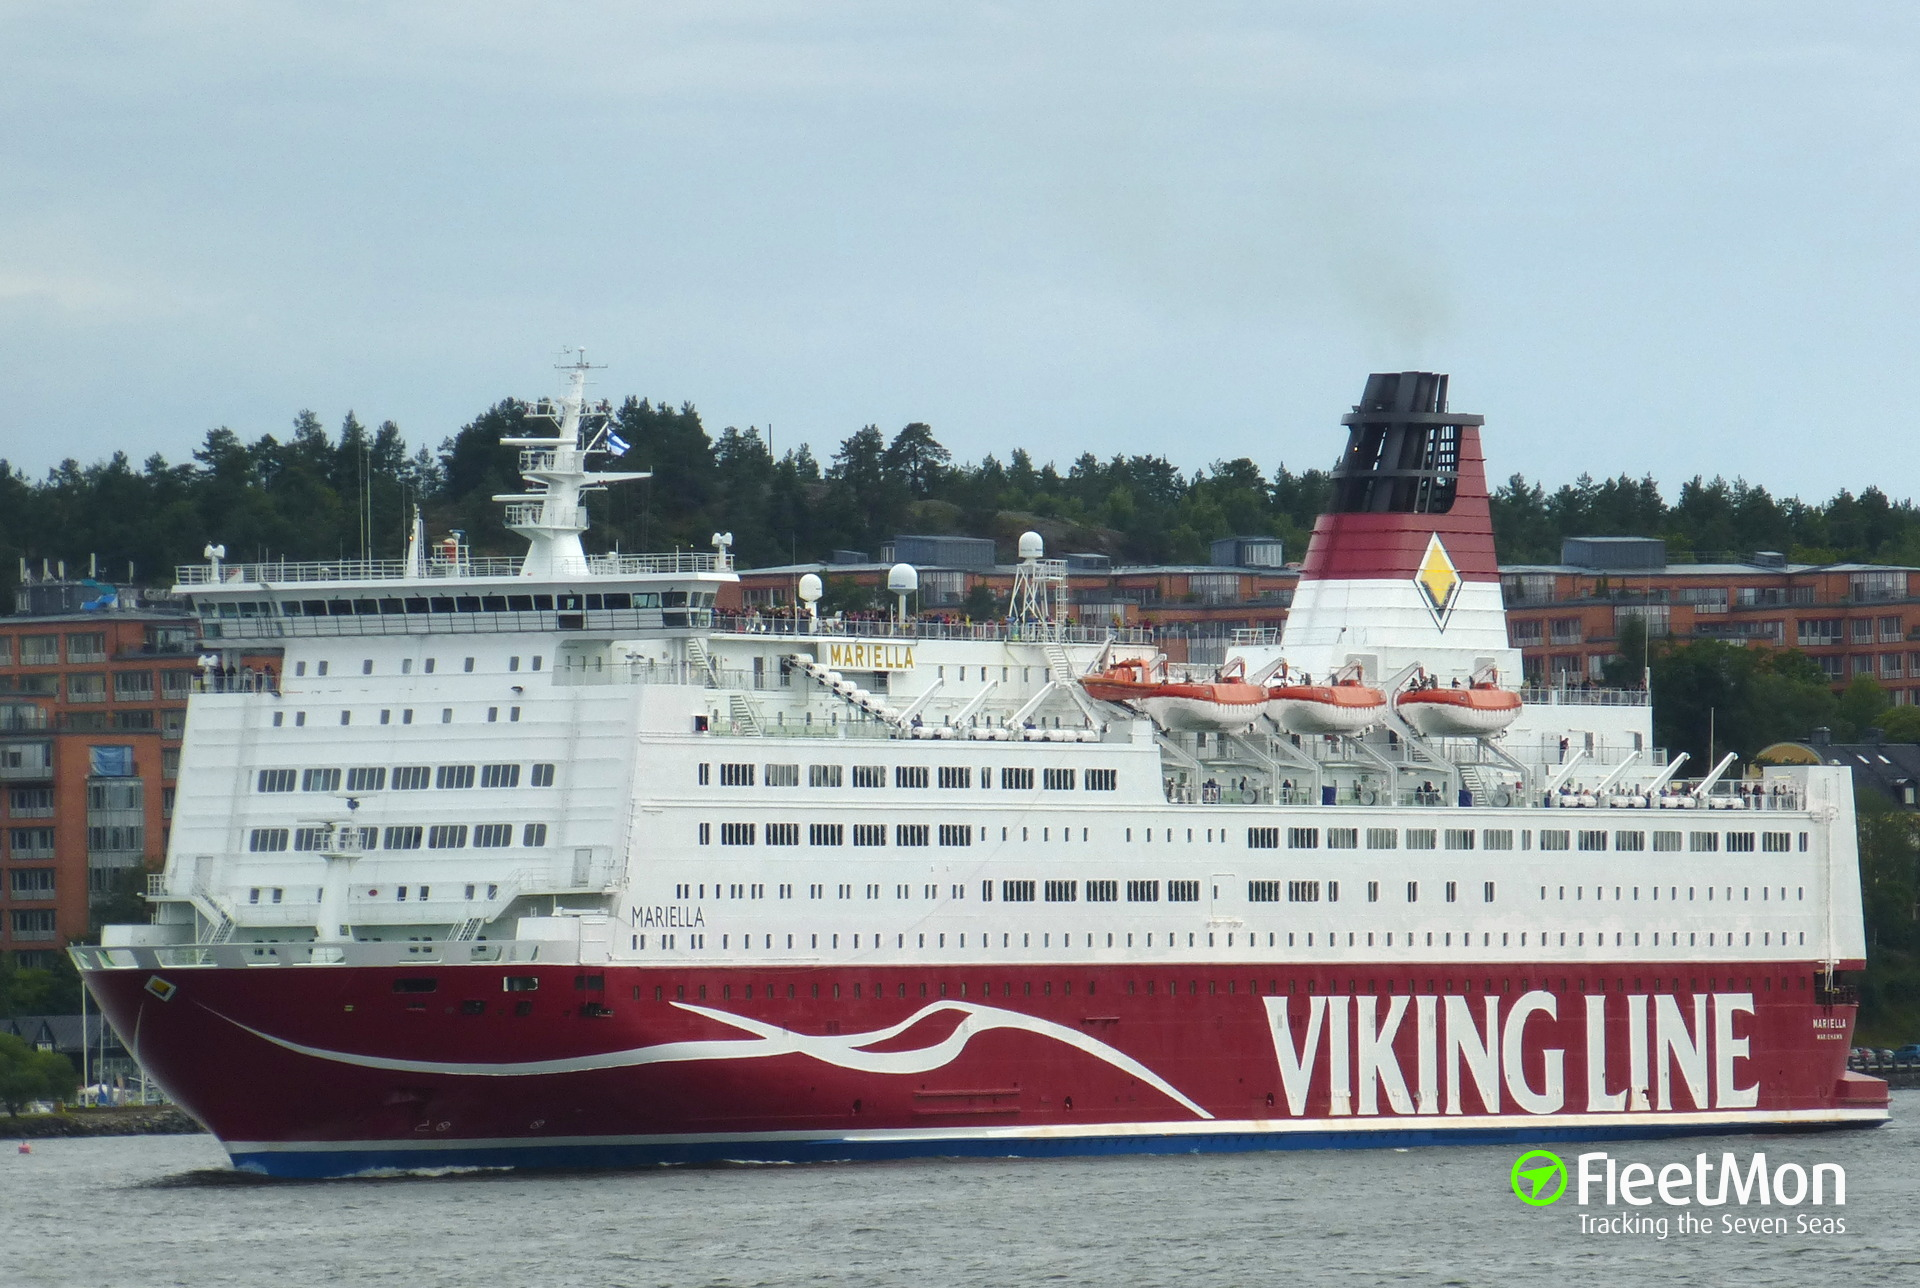 Faulty fire system damaged cabins and passengers luggage, Viking Line